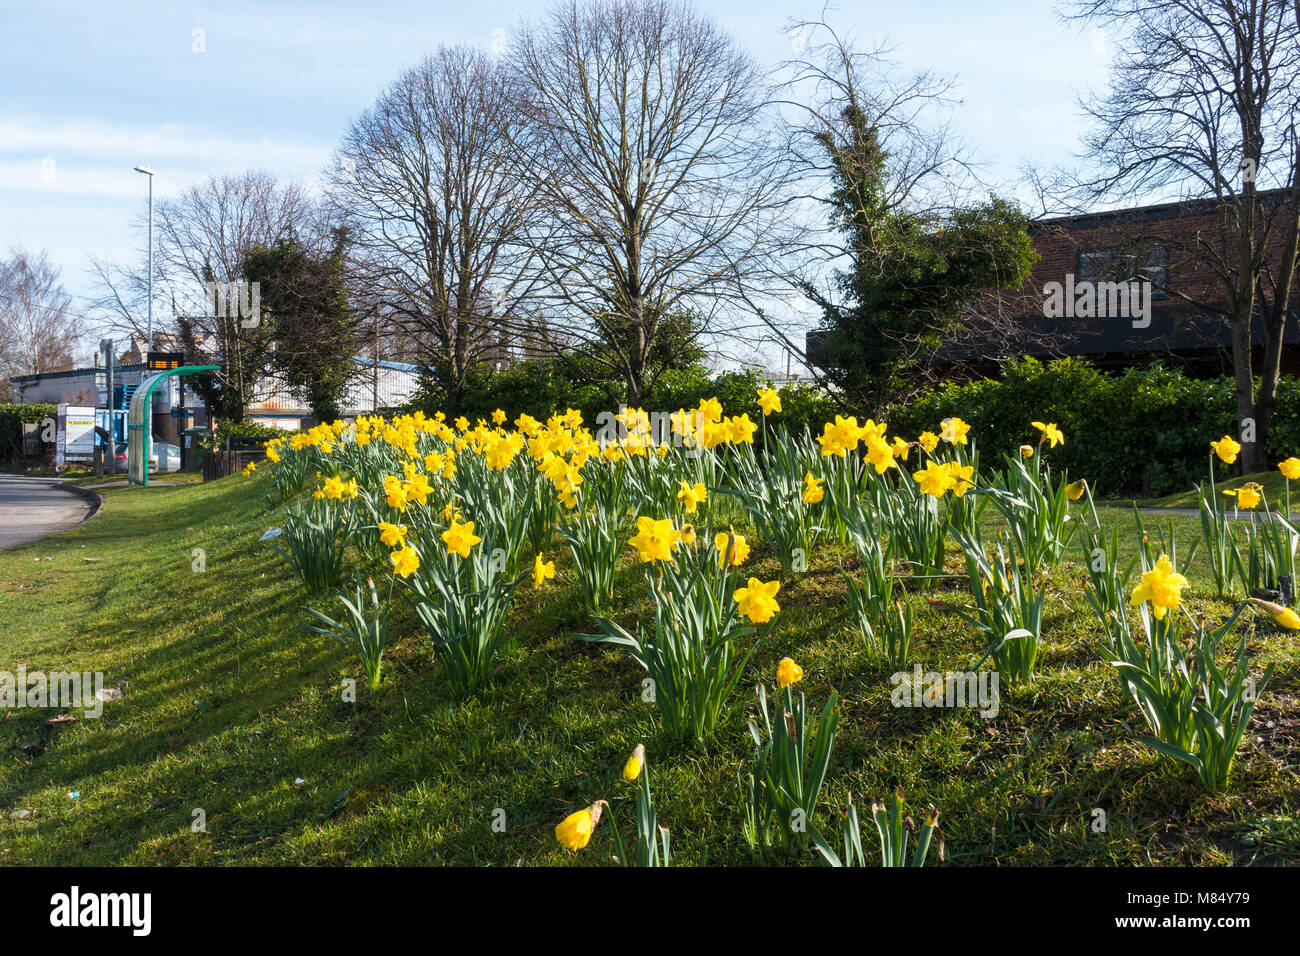 yellow-daffodil-drift-at-entrance-to-bus